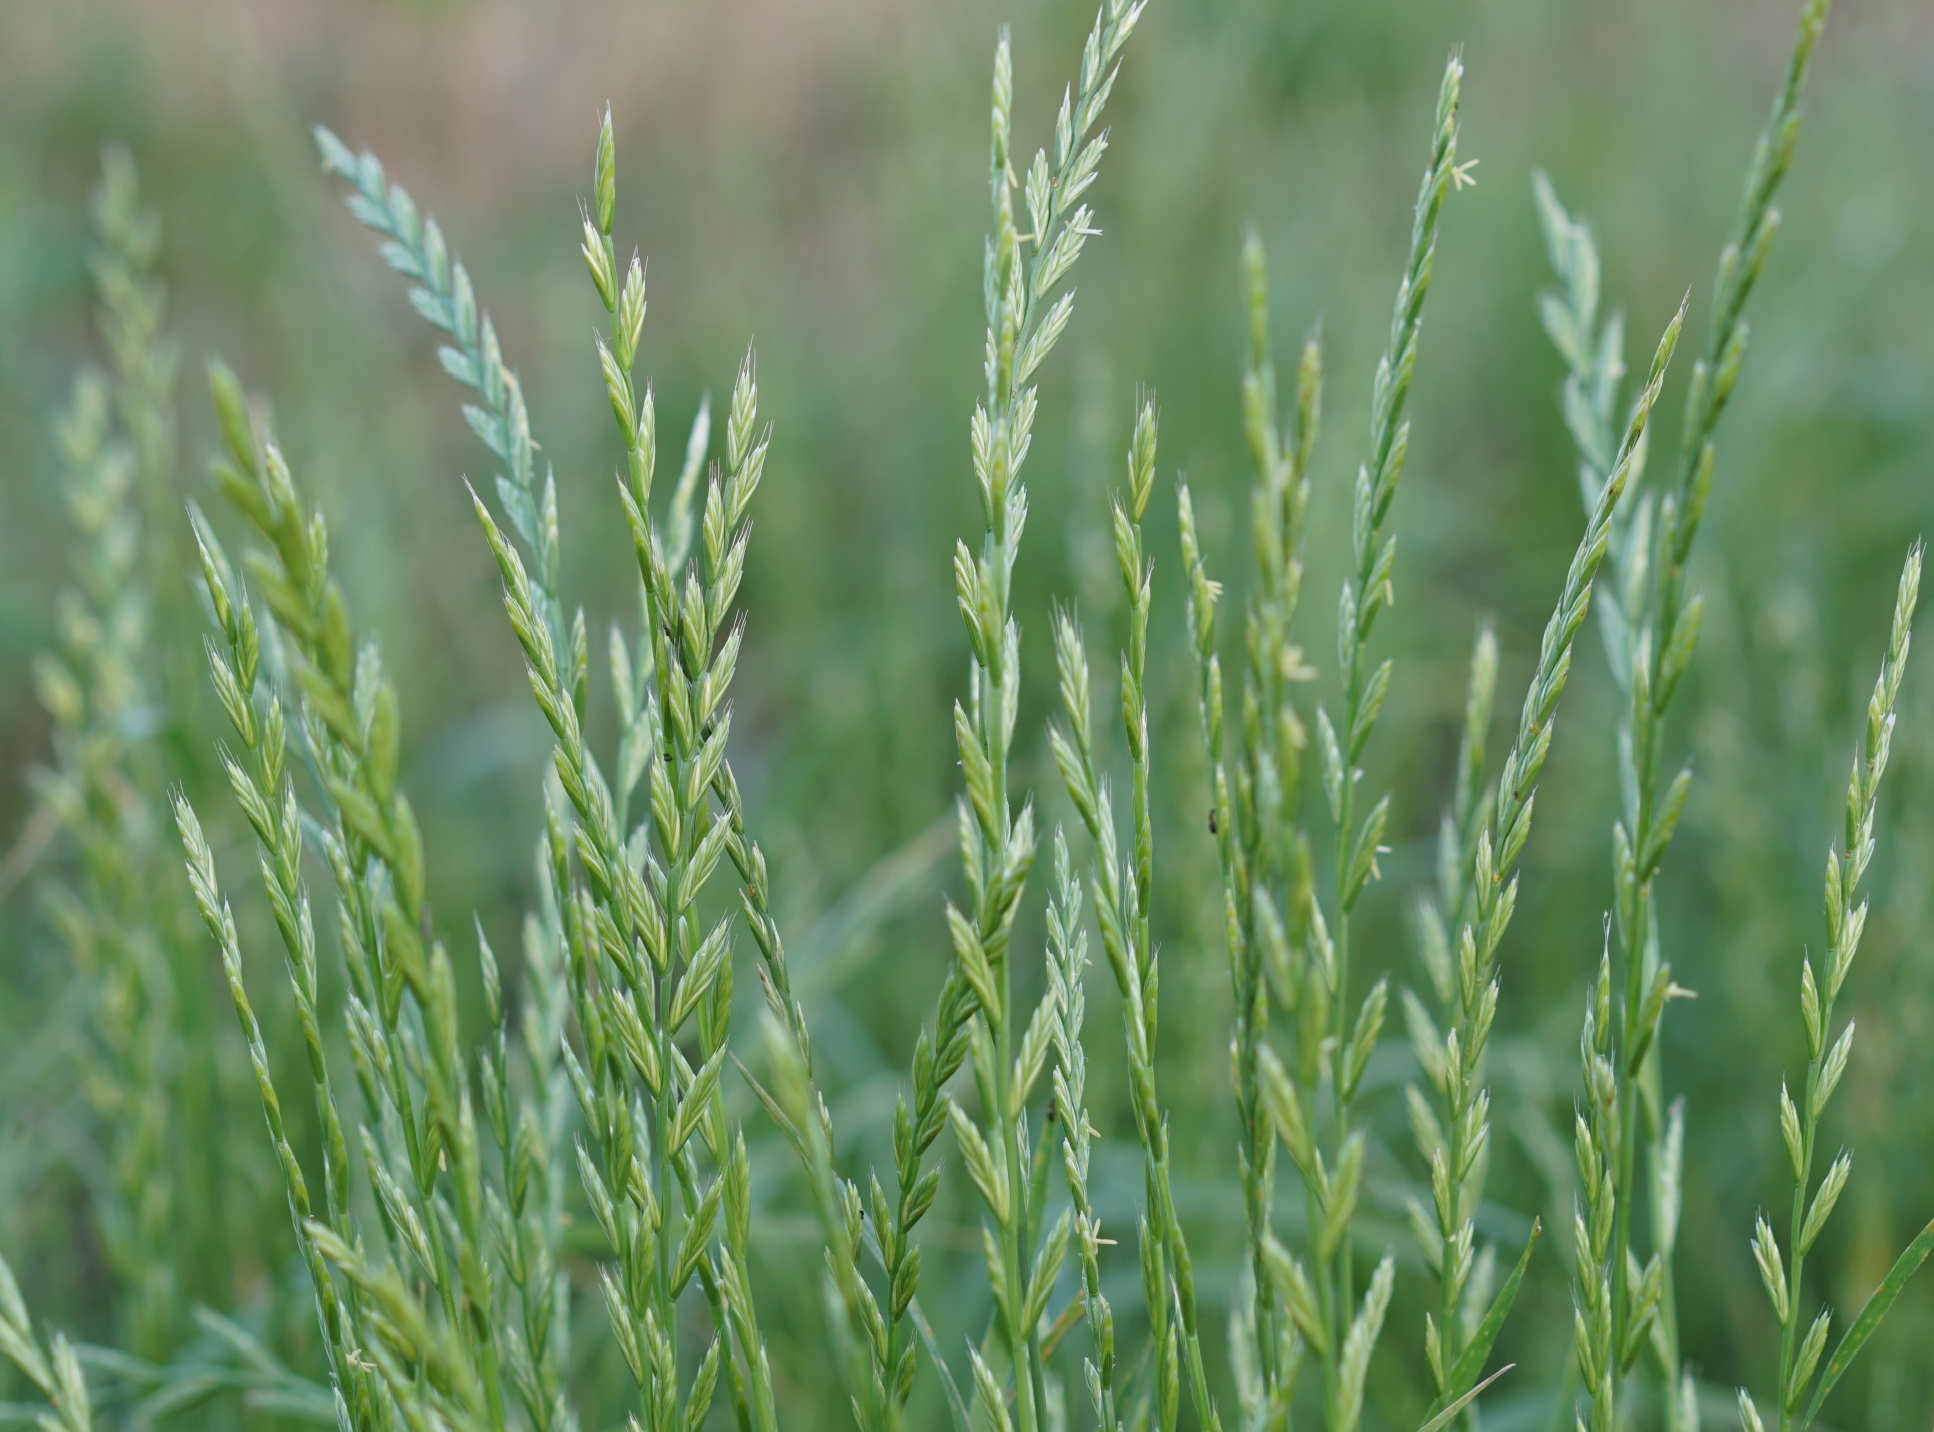 Researchers are developing immunotherapy treatments from protein fragments, or peptides, from rye grass (Lolium perenne). Image: Shutterstock / Doikanoi